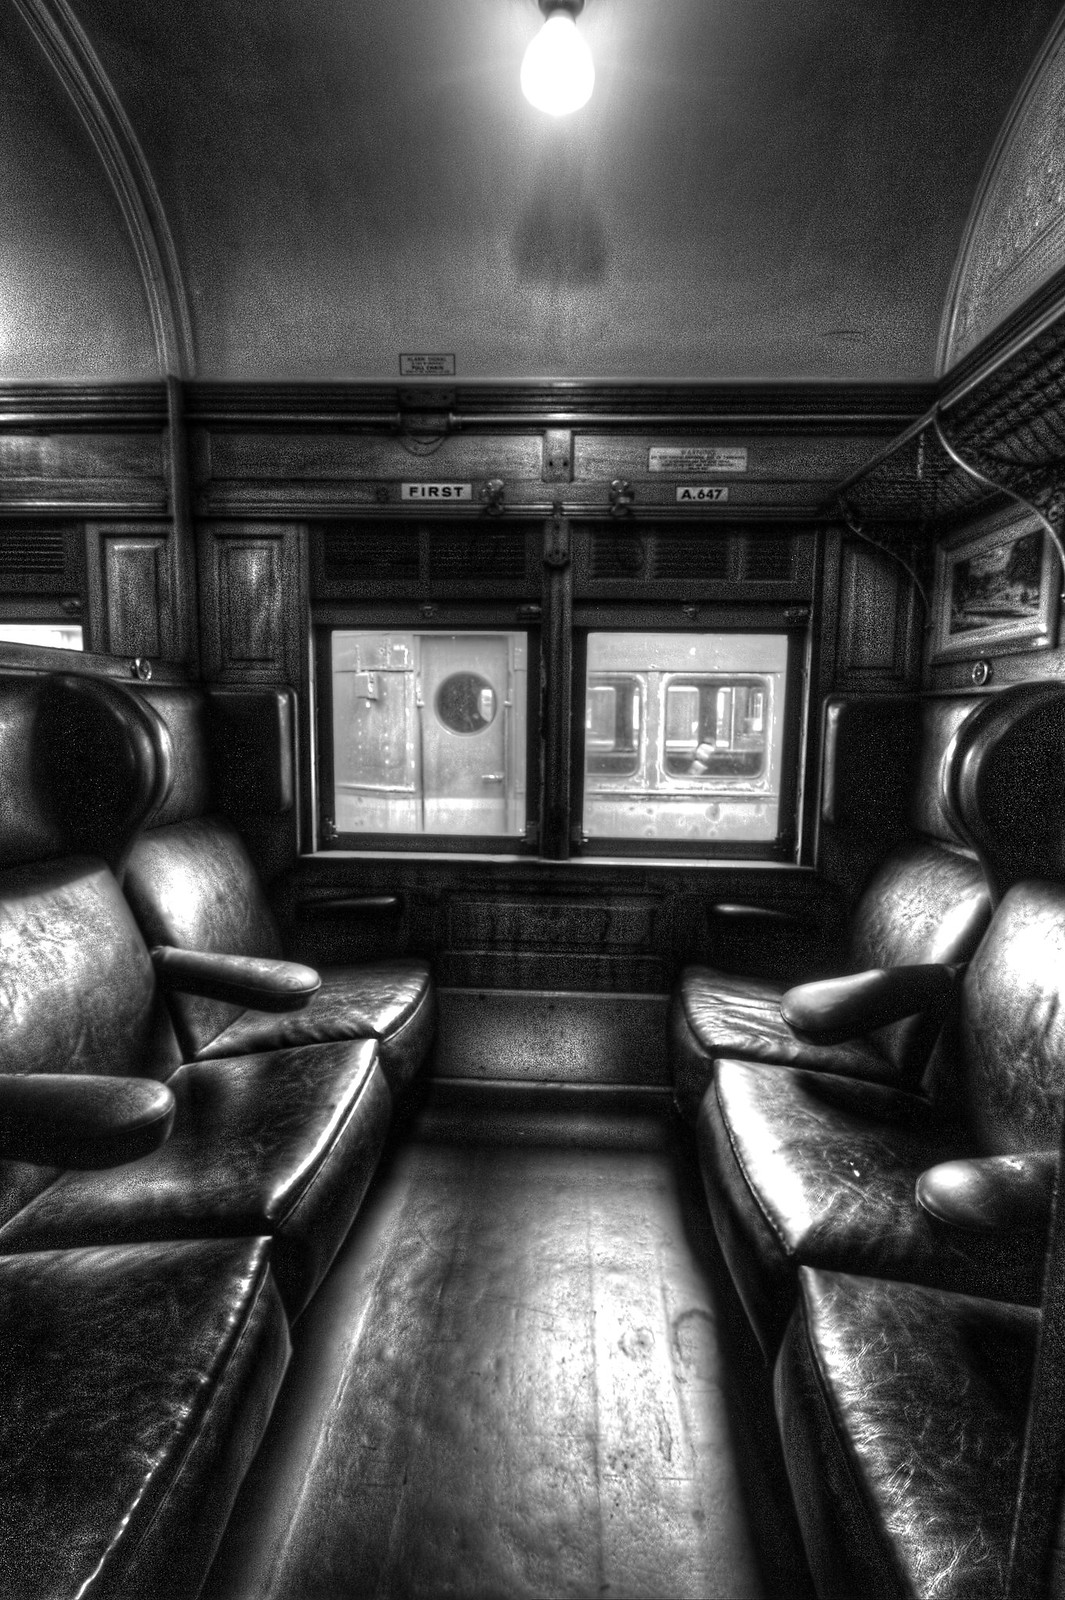 First Class passengers only by Ian Ramsay